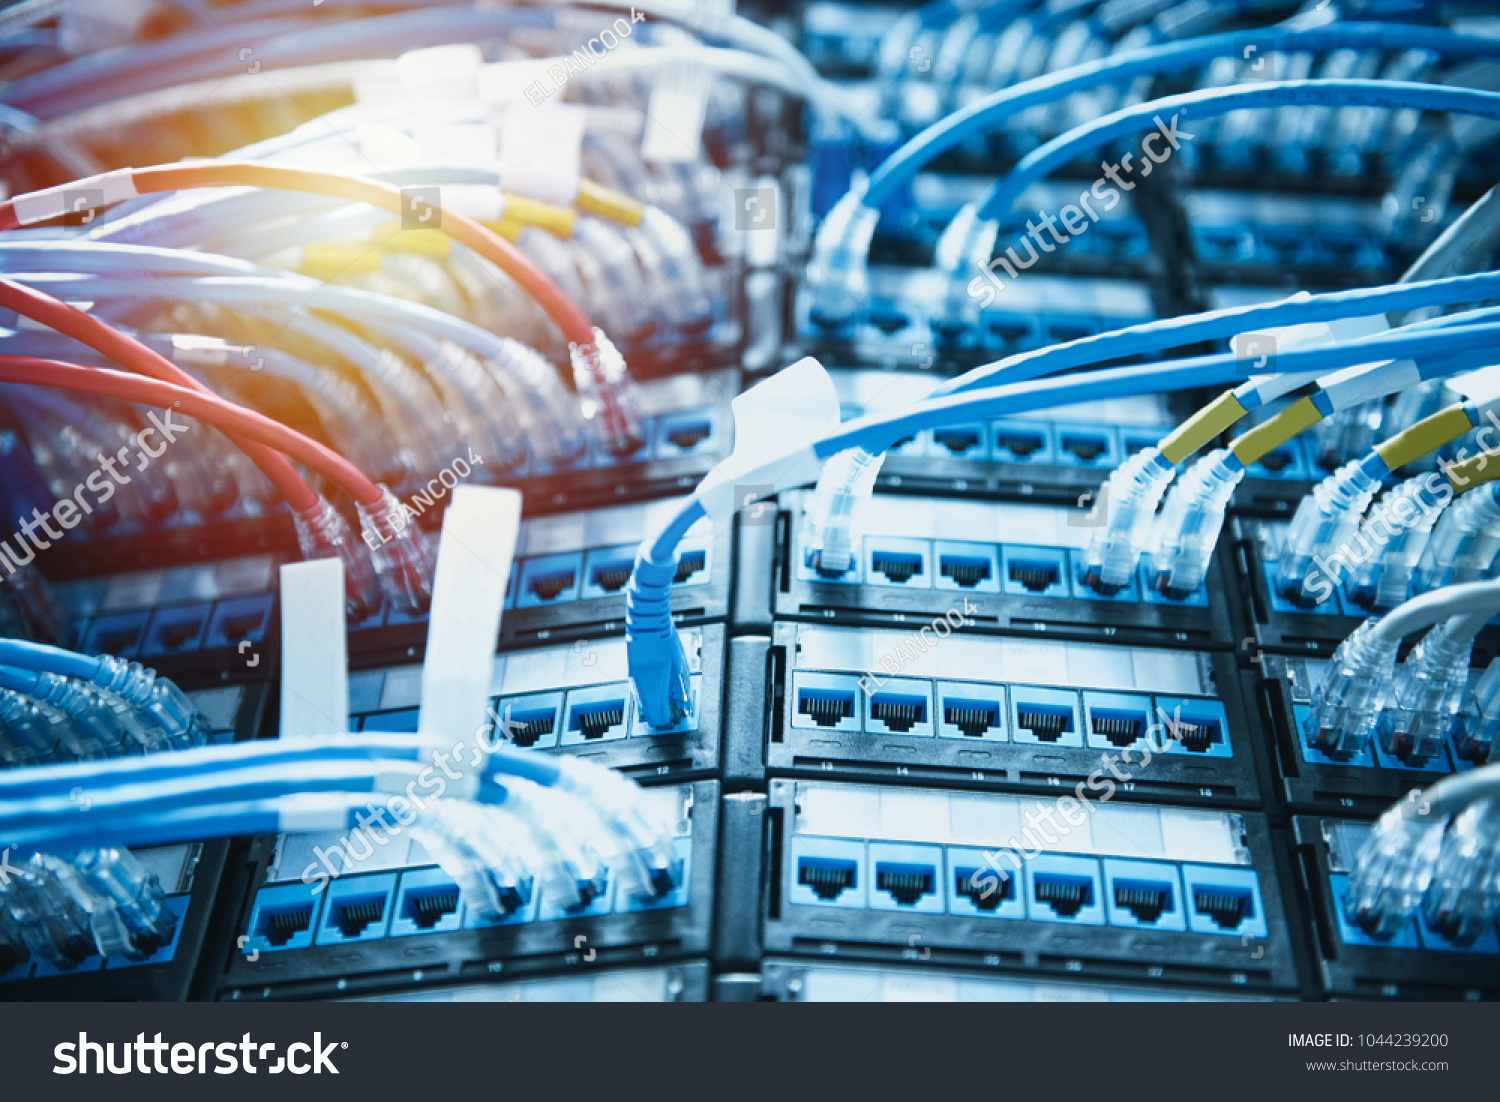 Ethernet Cables Connected On Patch Cord Stock Photo (Safe to Use ...